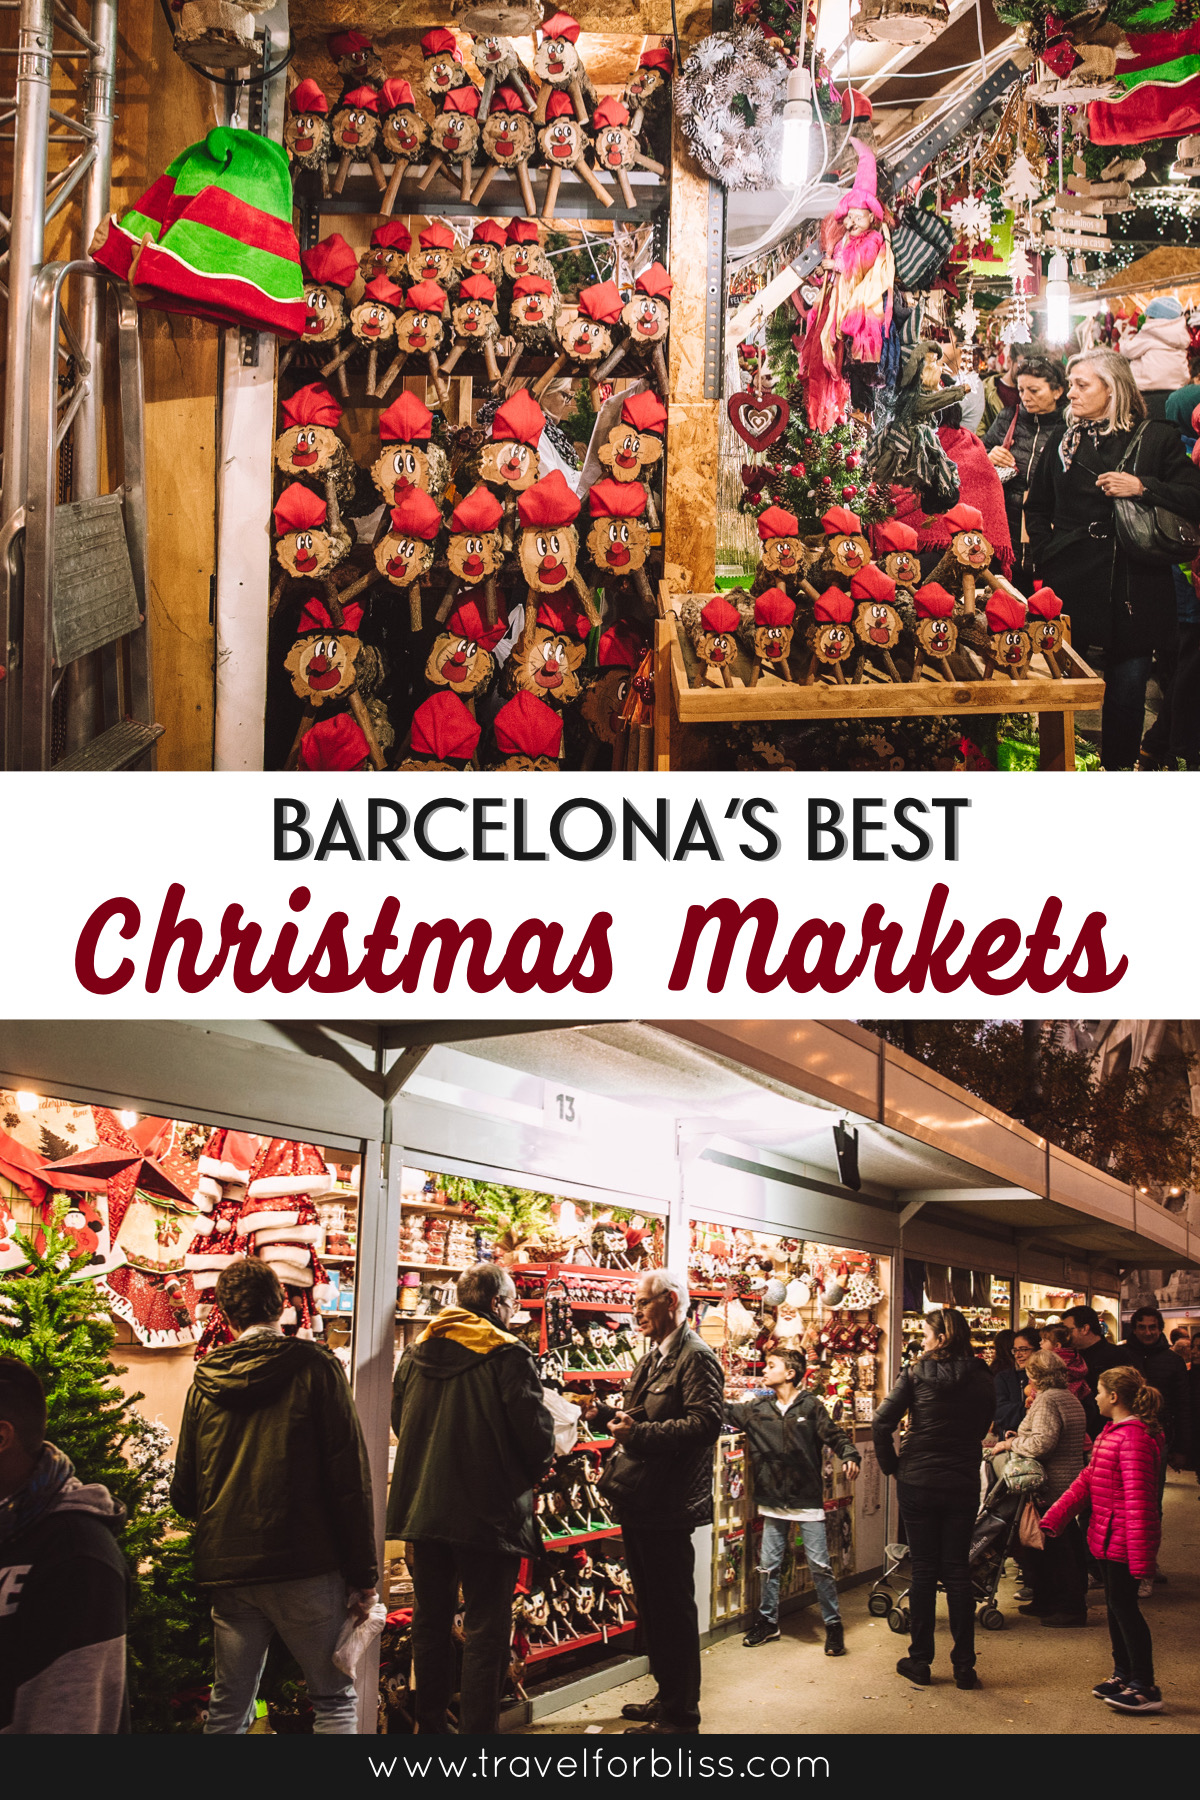 Barcelona's best christmas markets. Travel guide on when and where the christmas markets are in Barcelona